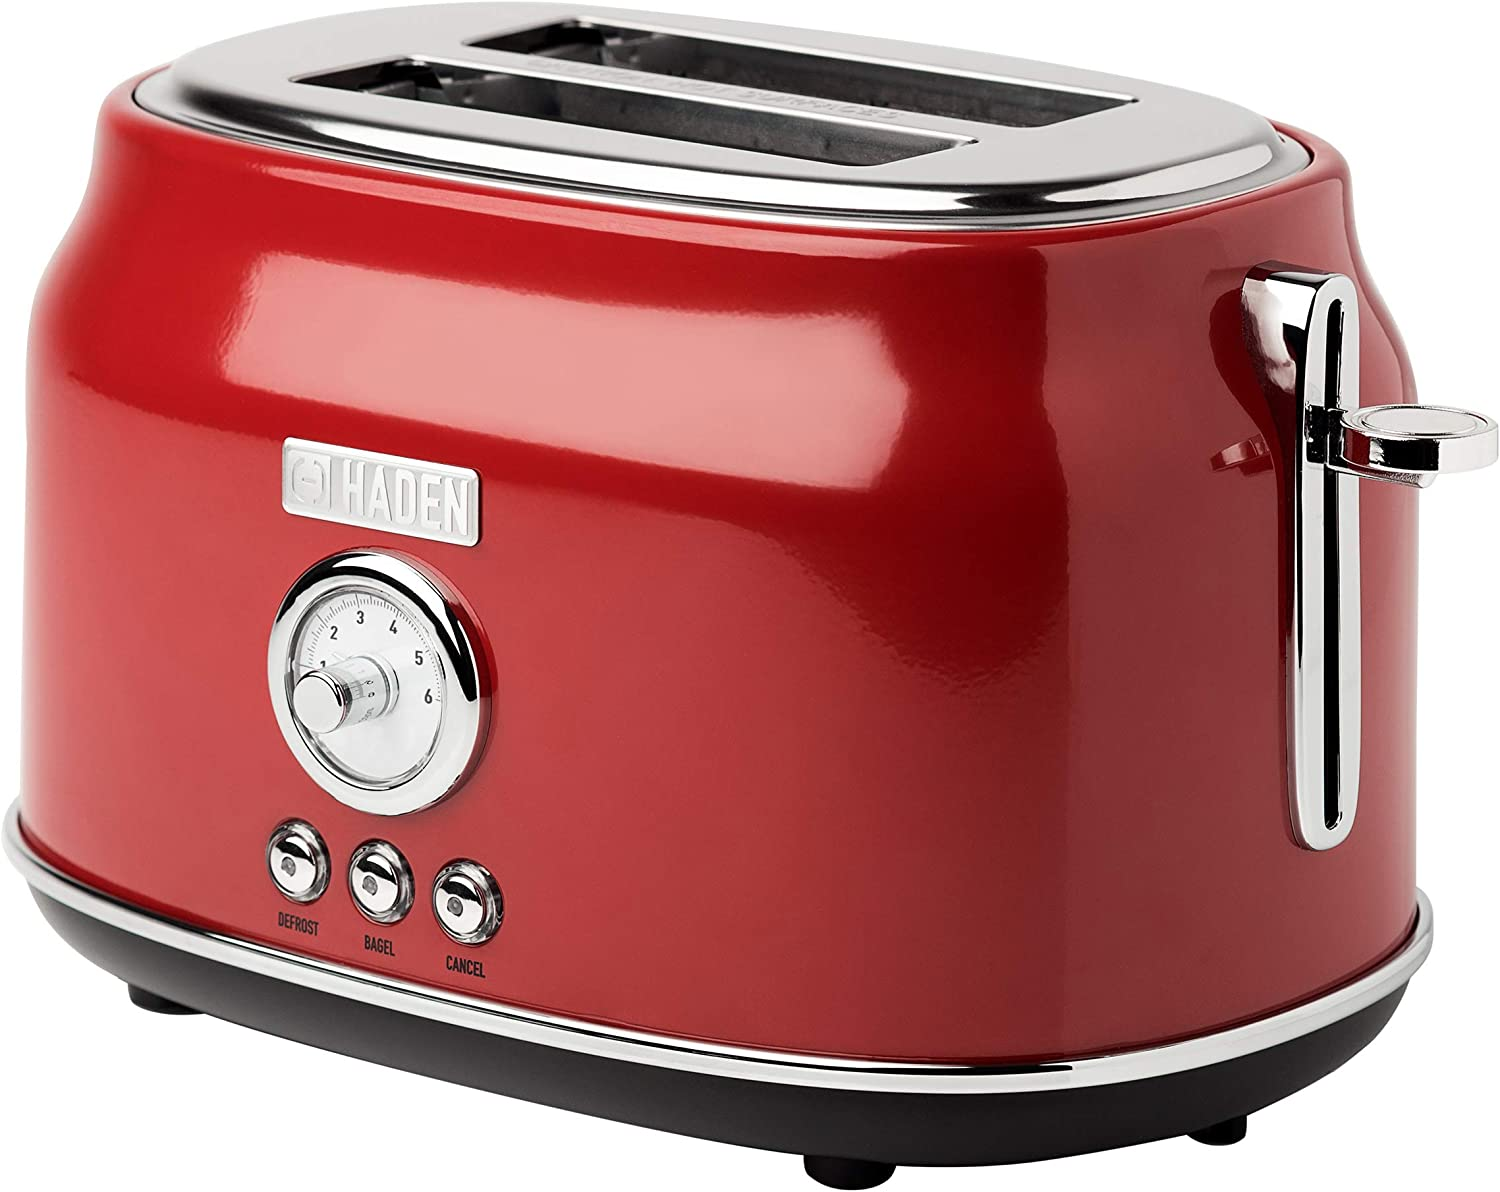 Haden DORSET 2-Slice, Wide Slot, Stainless Steel Retro Toaster with Adjustable Browning Control and Cancel, Defrost and Reheat Settings in Red